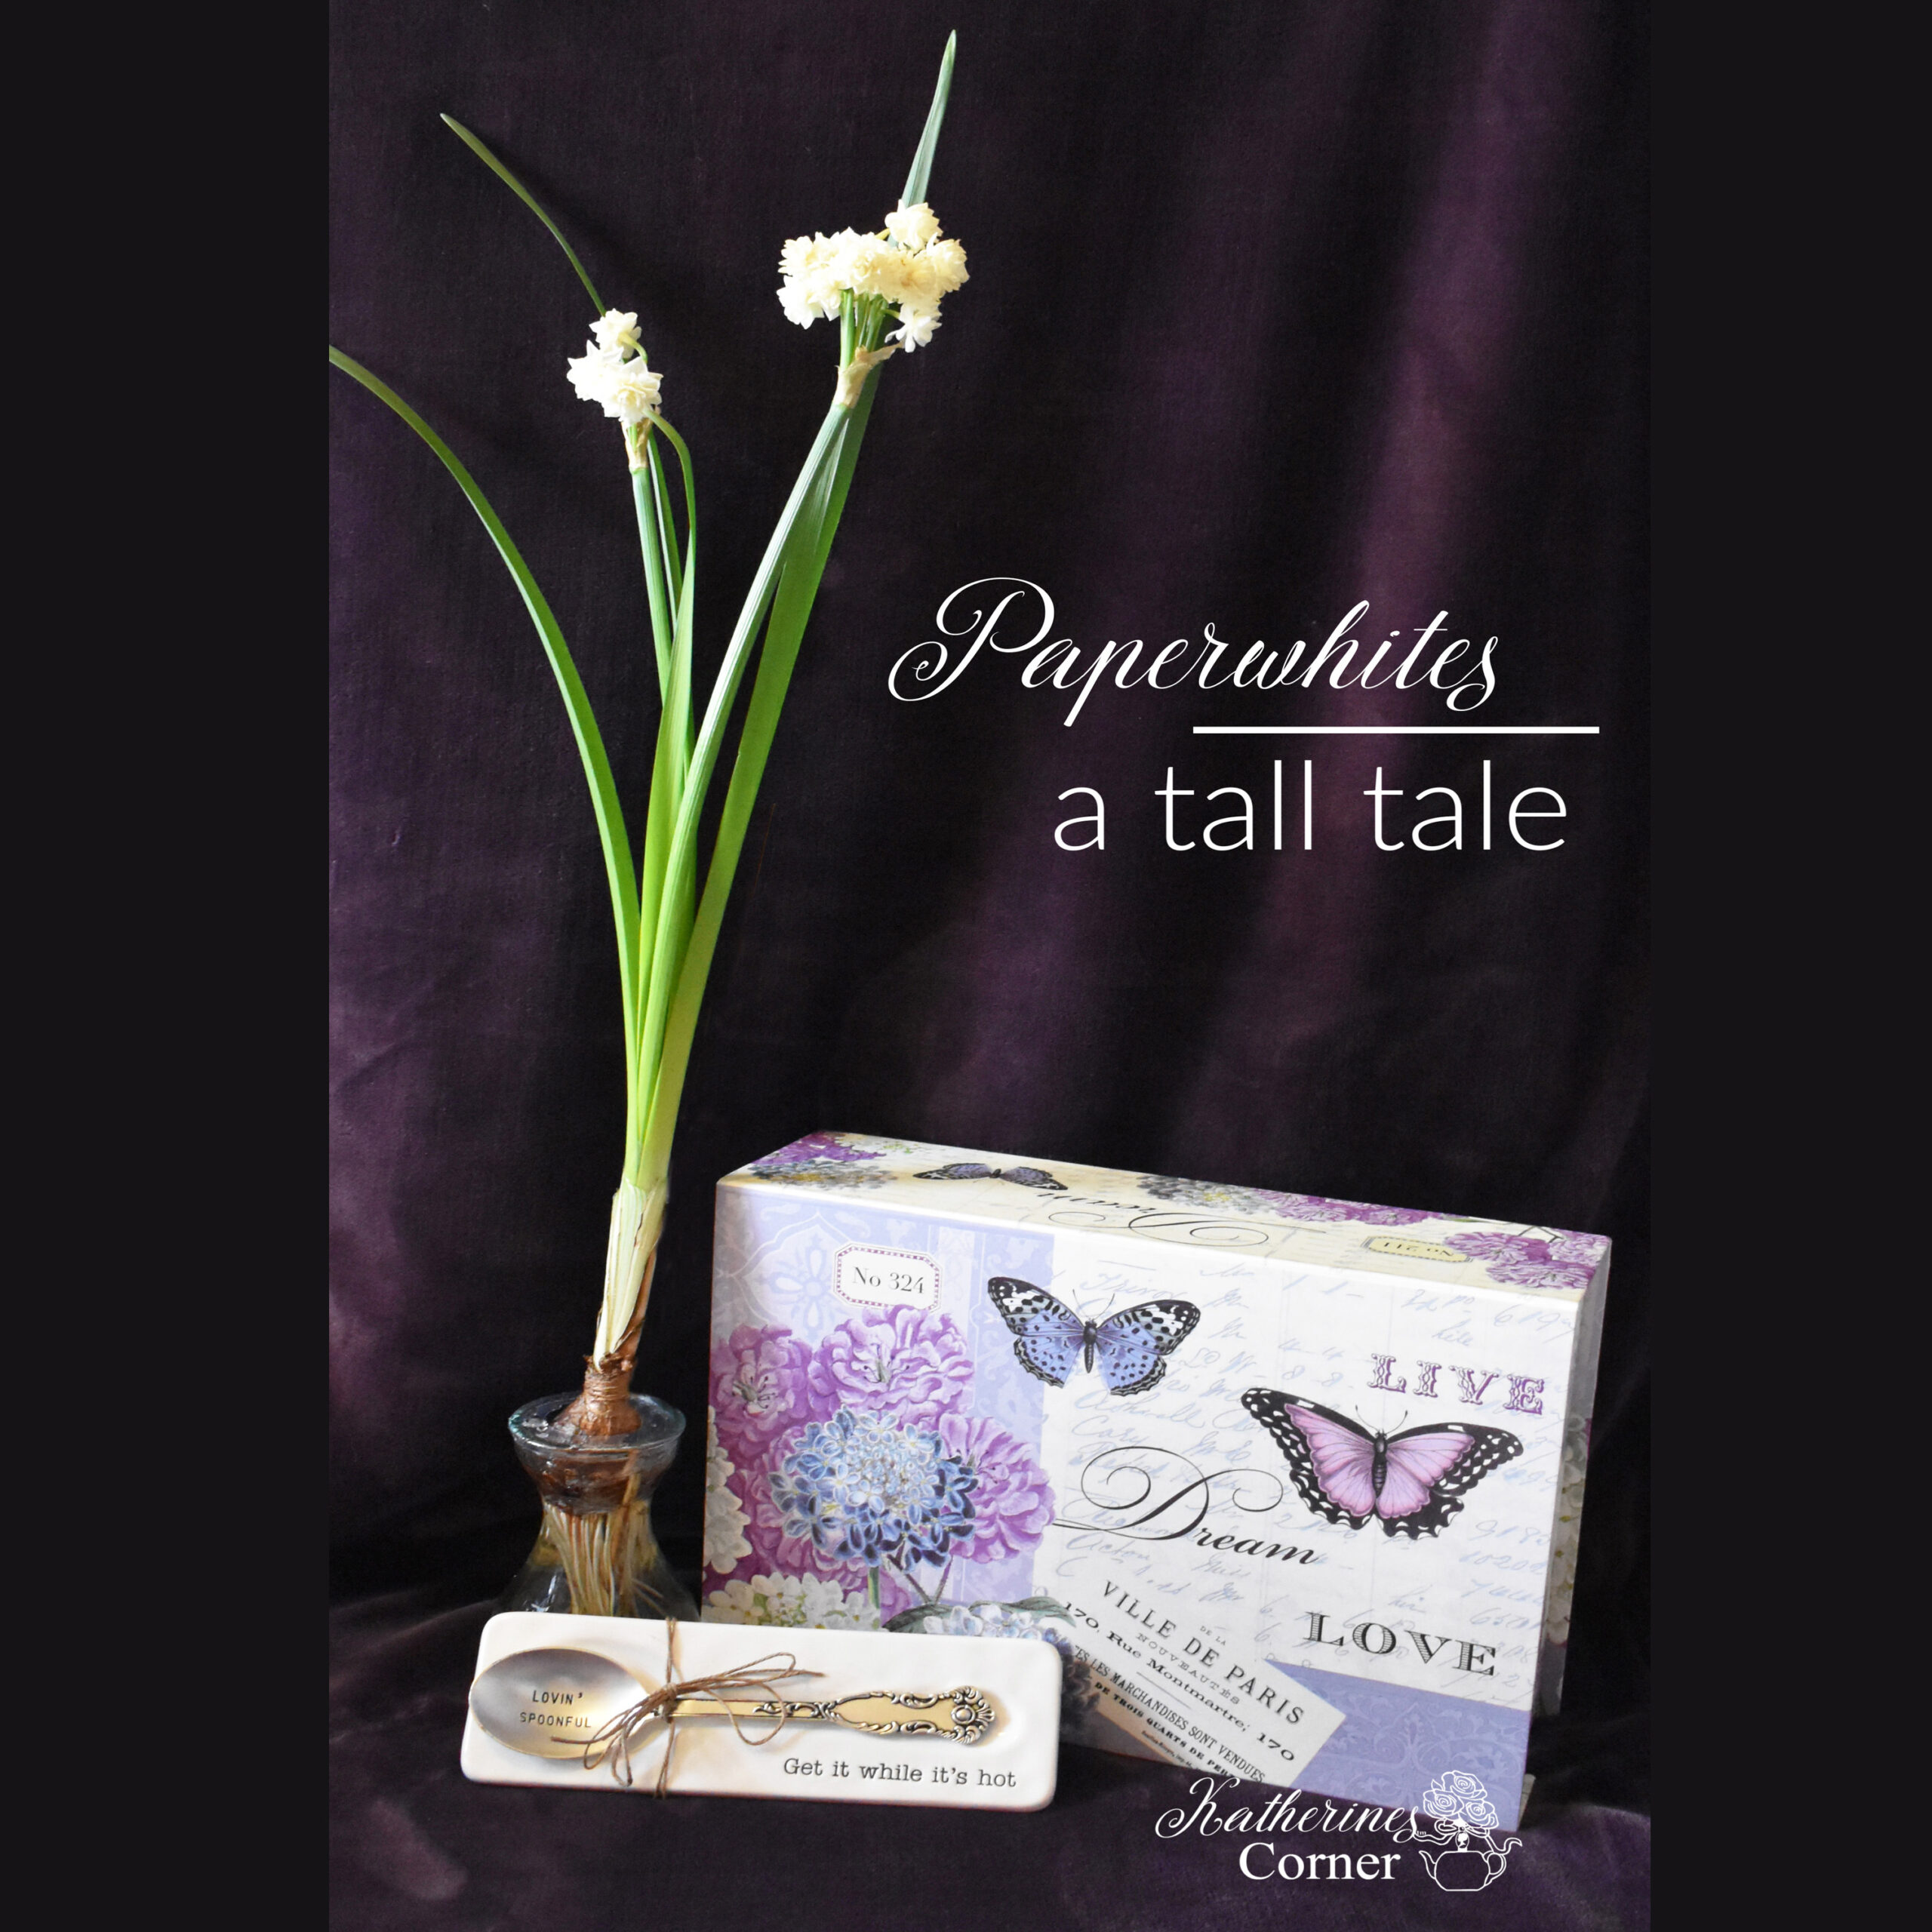 Paperwhites a Tall Tale